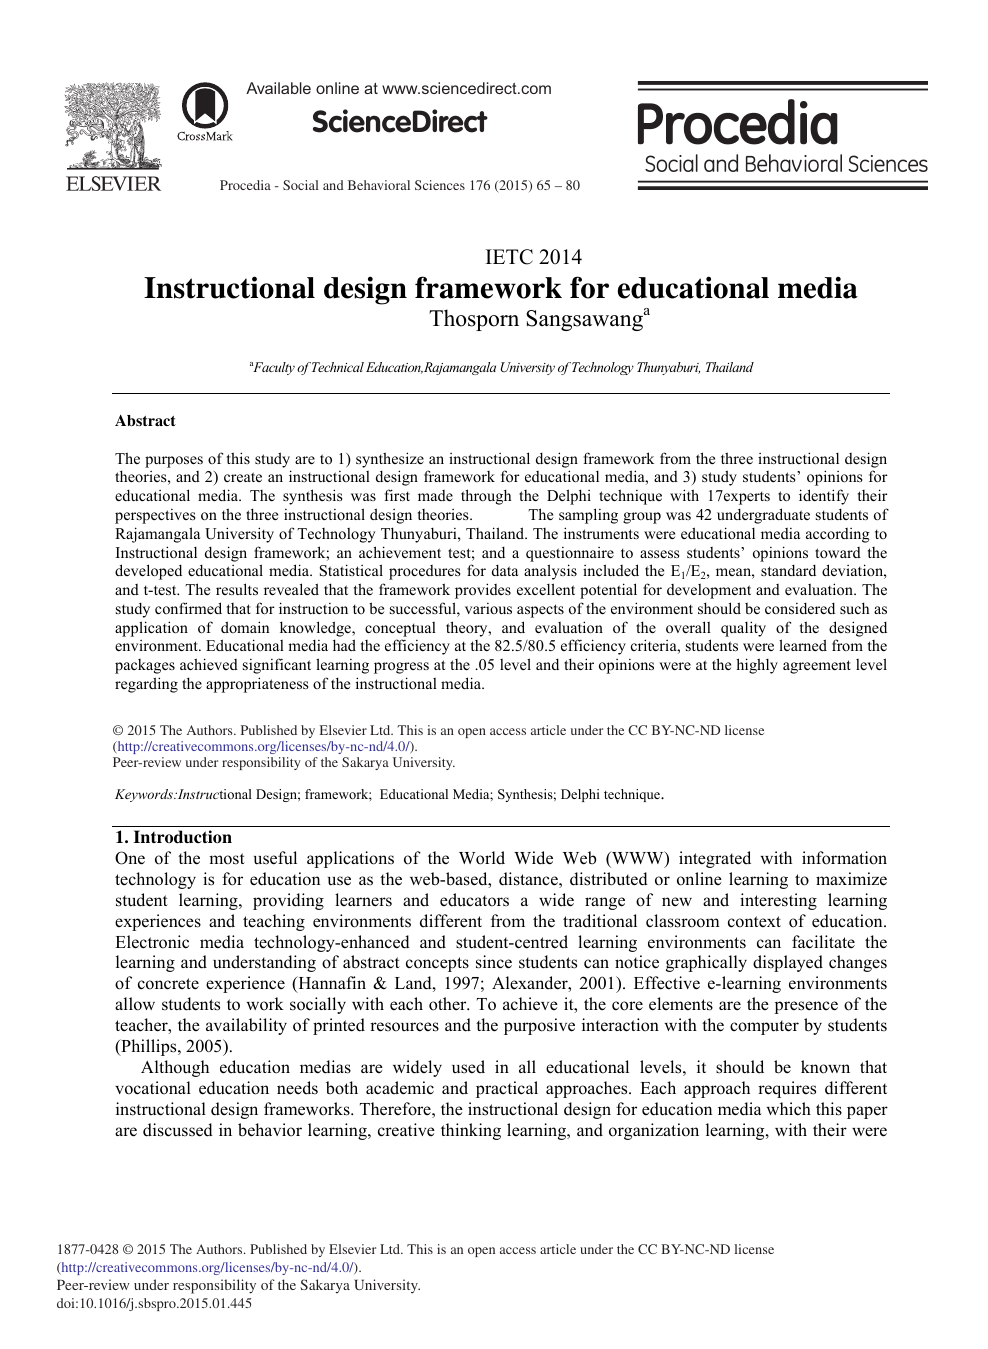 Instructional Design Framework For Educational Media Topic Of Research Paper In Economics And Business Download Scholarly Article Pdf And Read For Free On Cyberleninka Open Science Hub